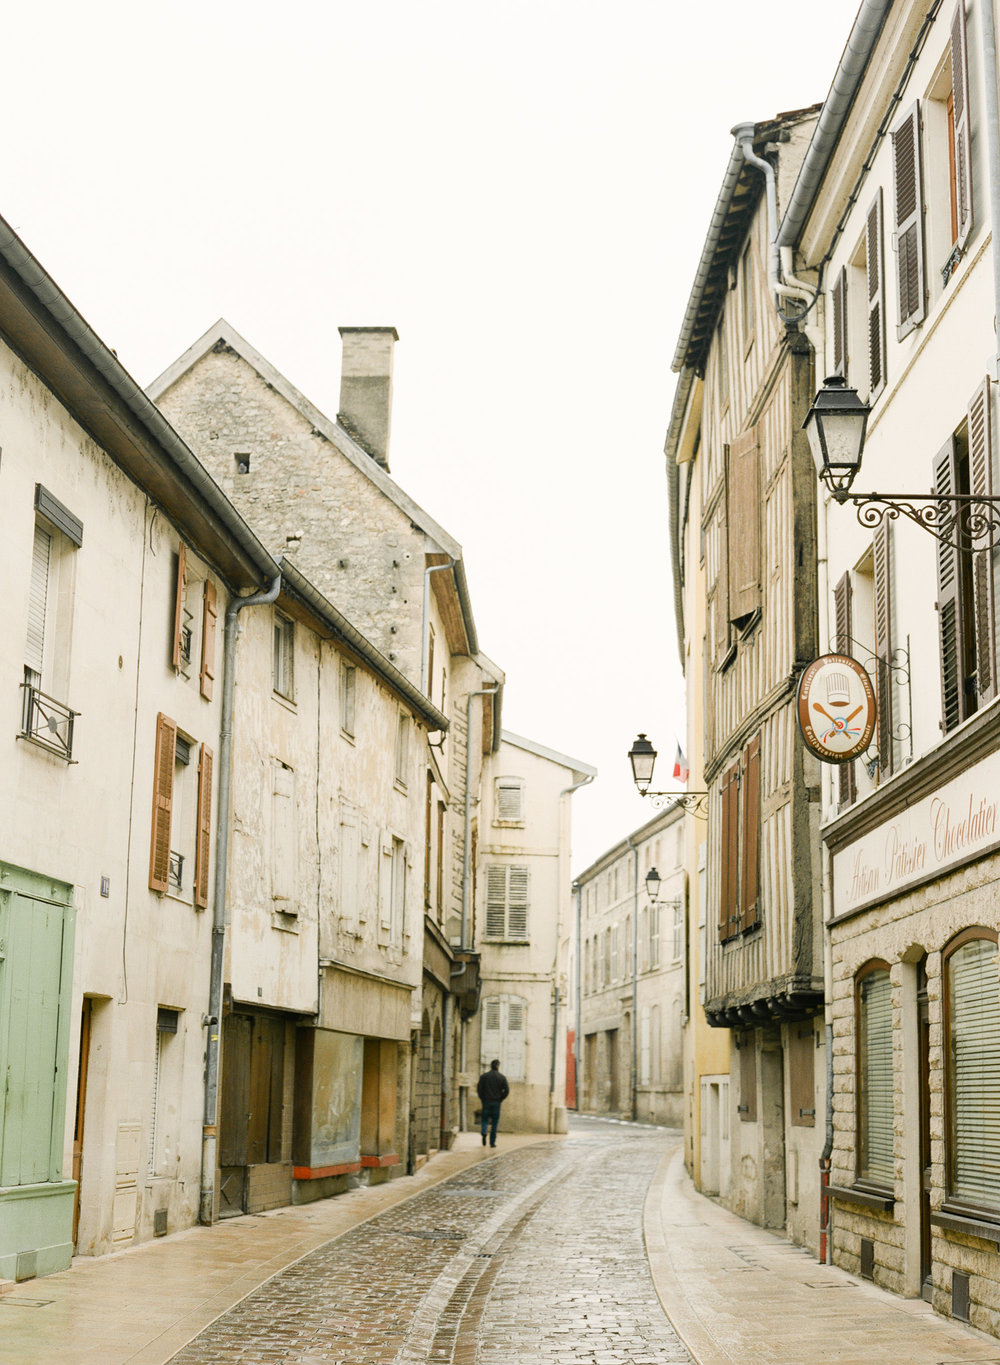 France-Travel-Advenutres-12.jpg